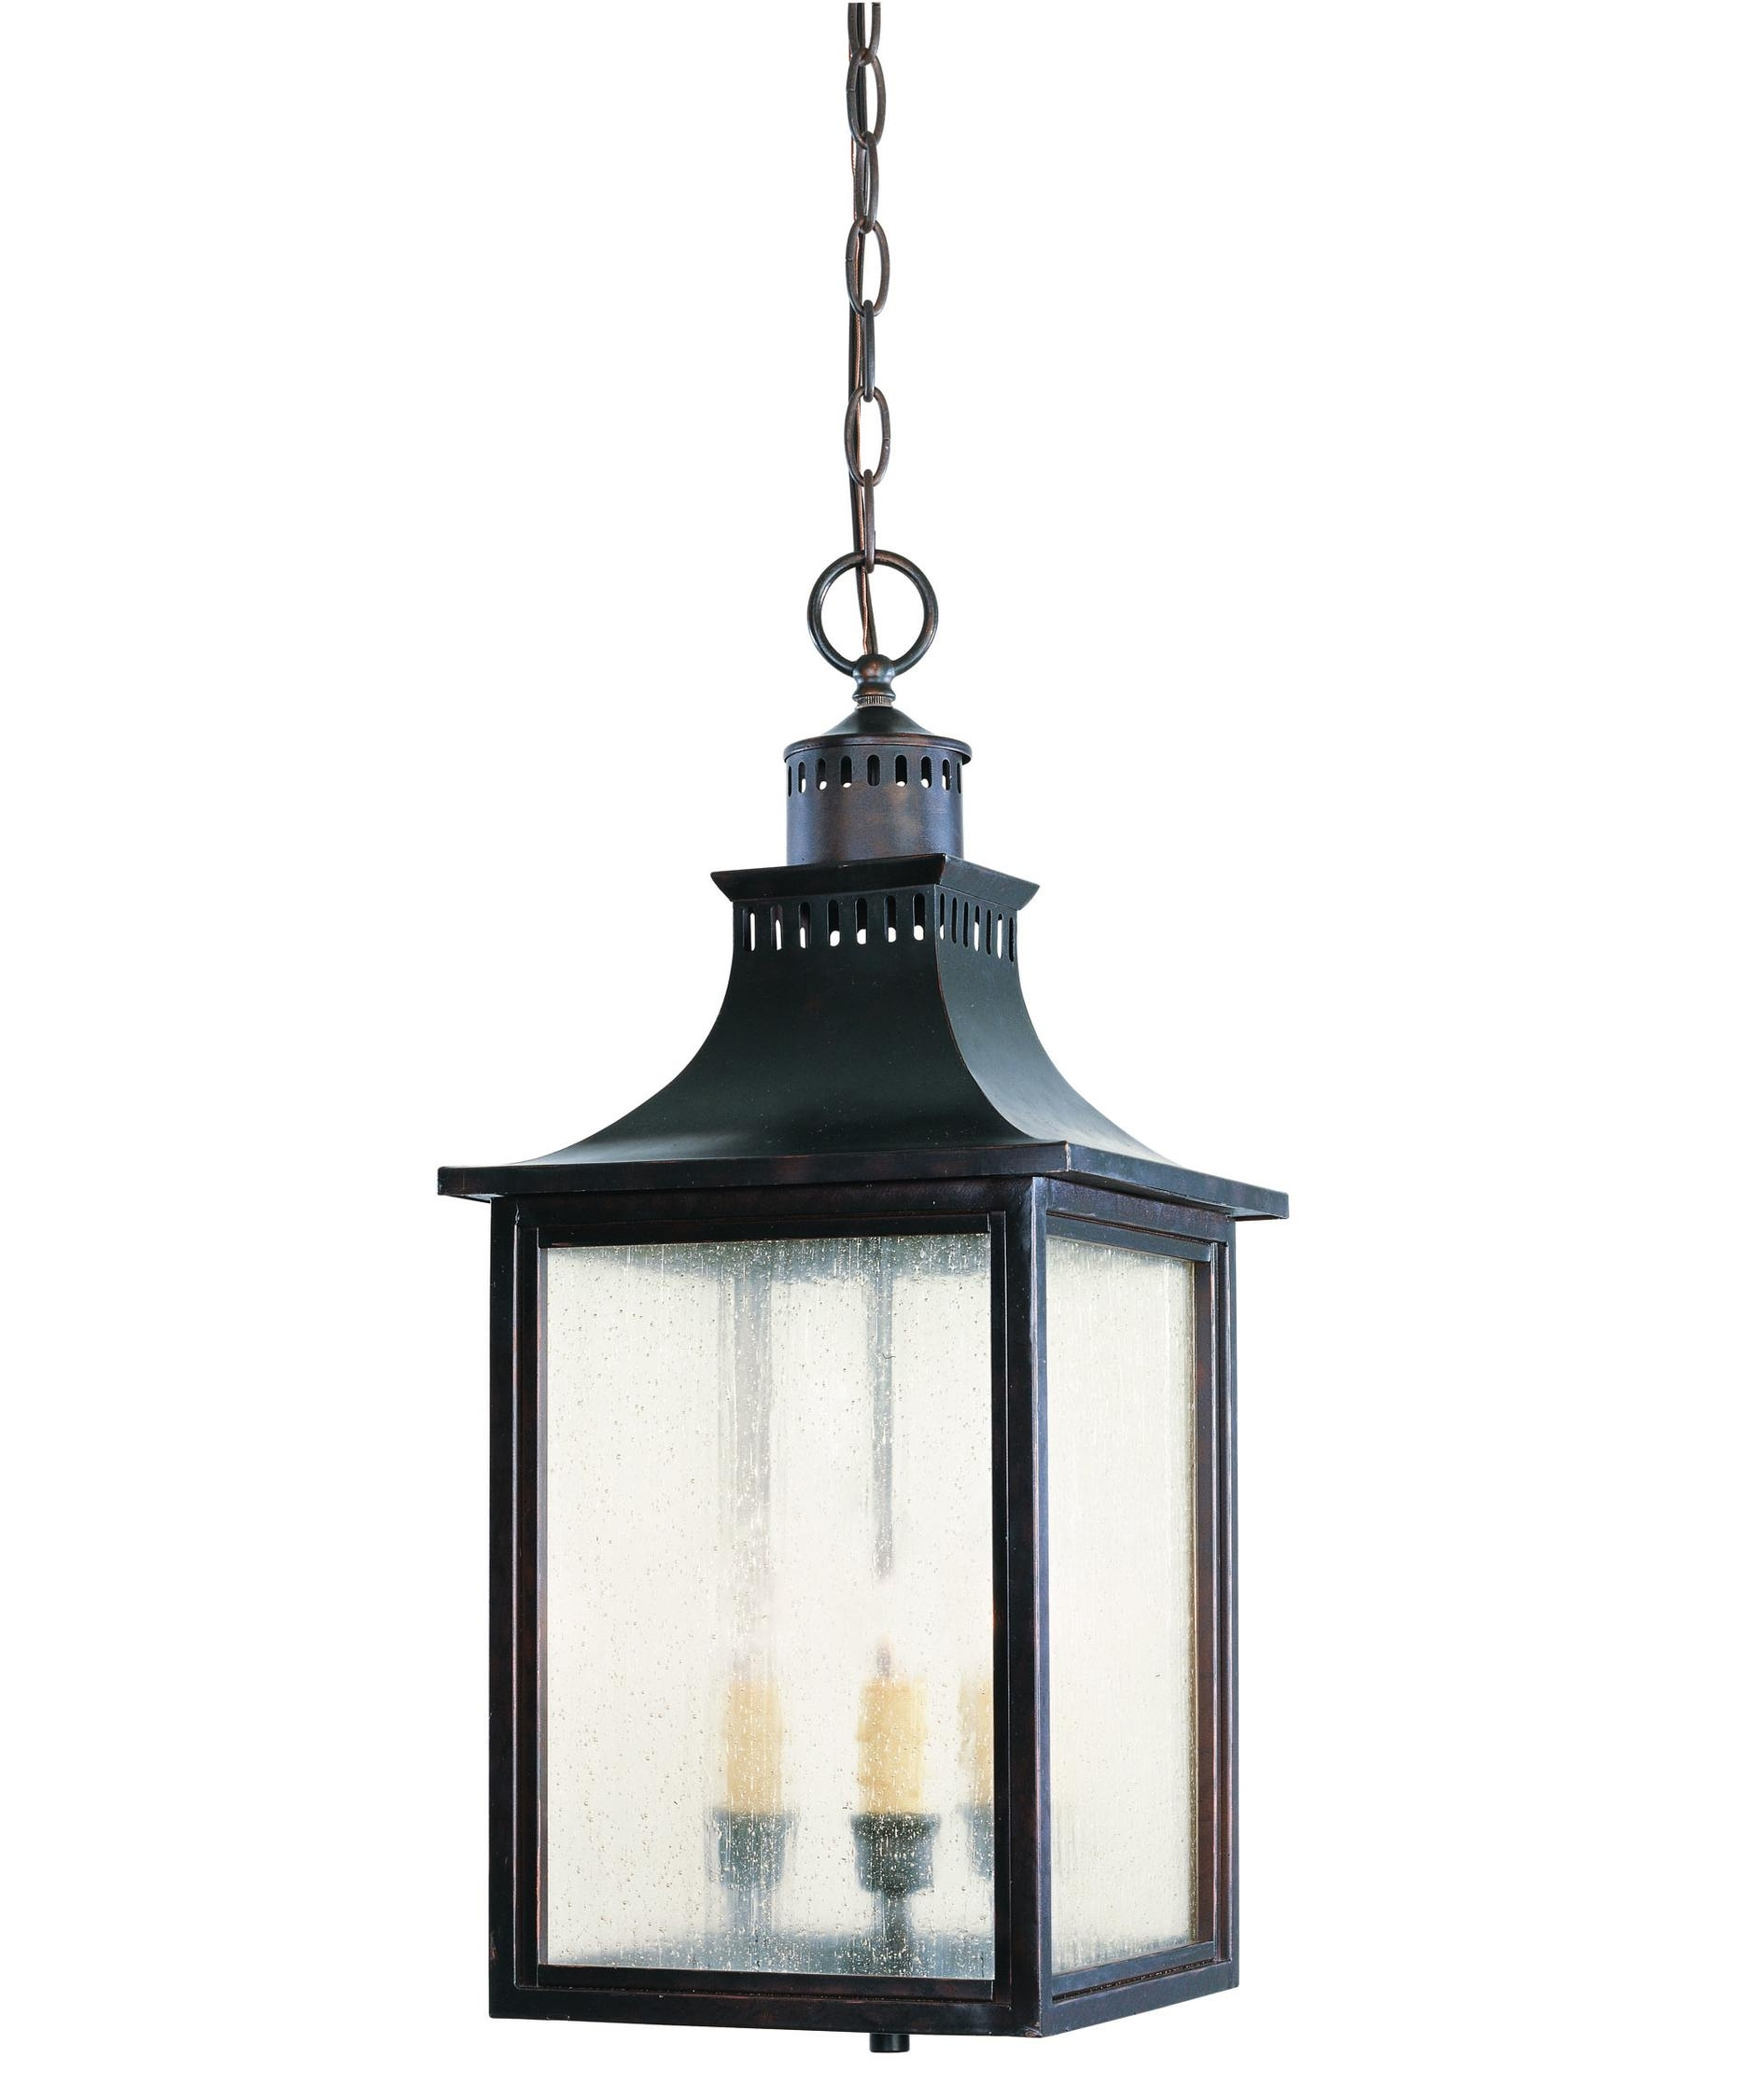 Popular Photo of Electric Outdoor Hanging Lanterns